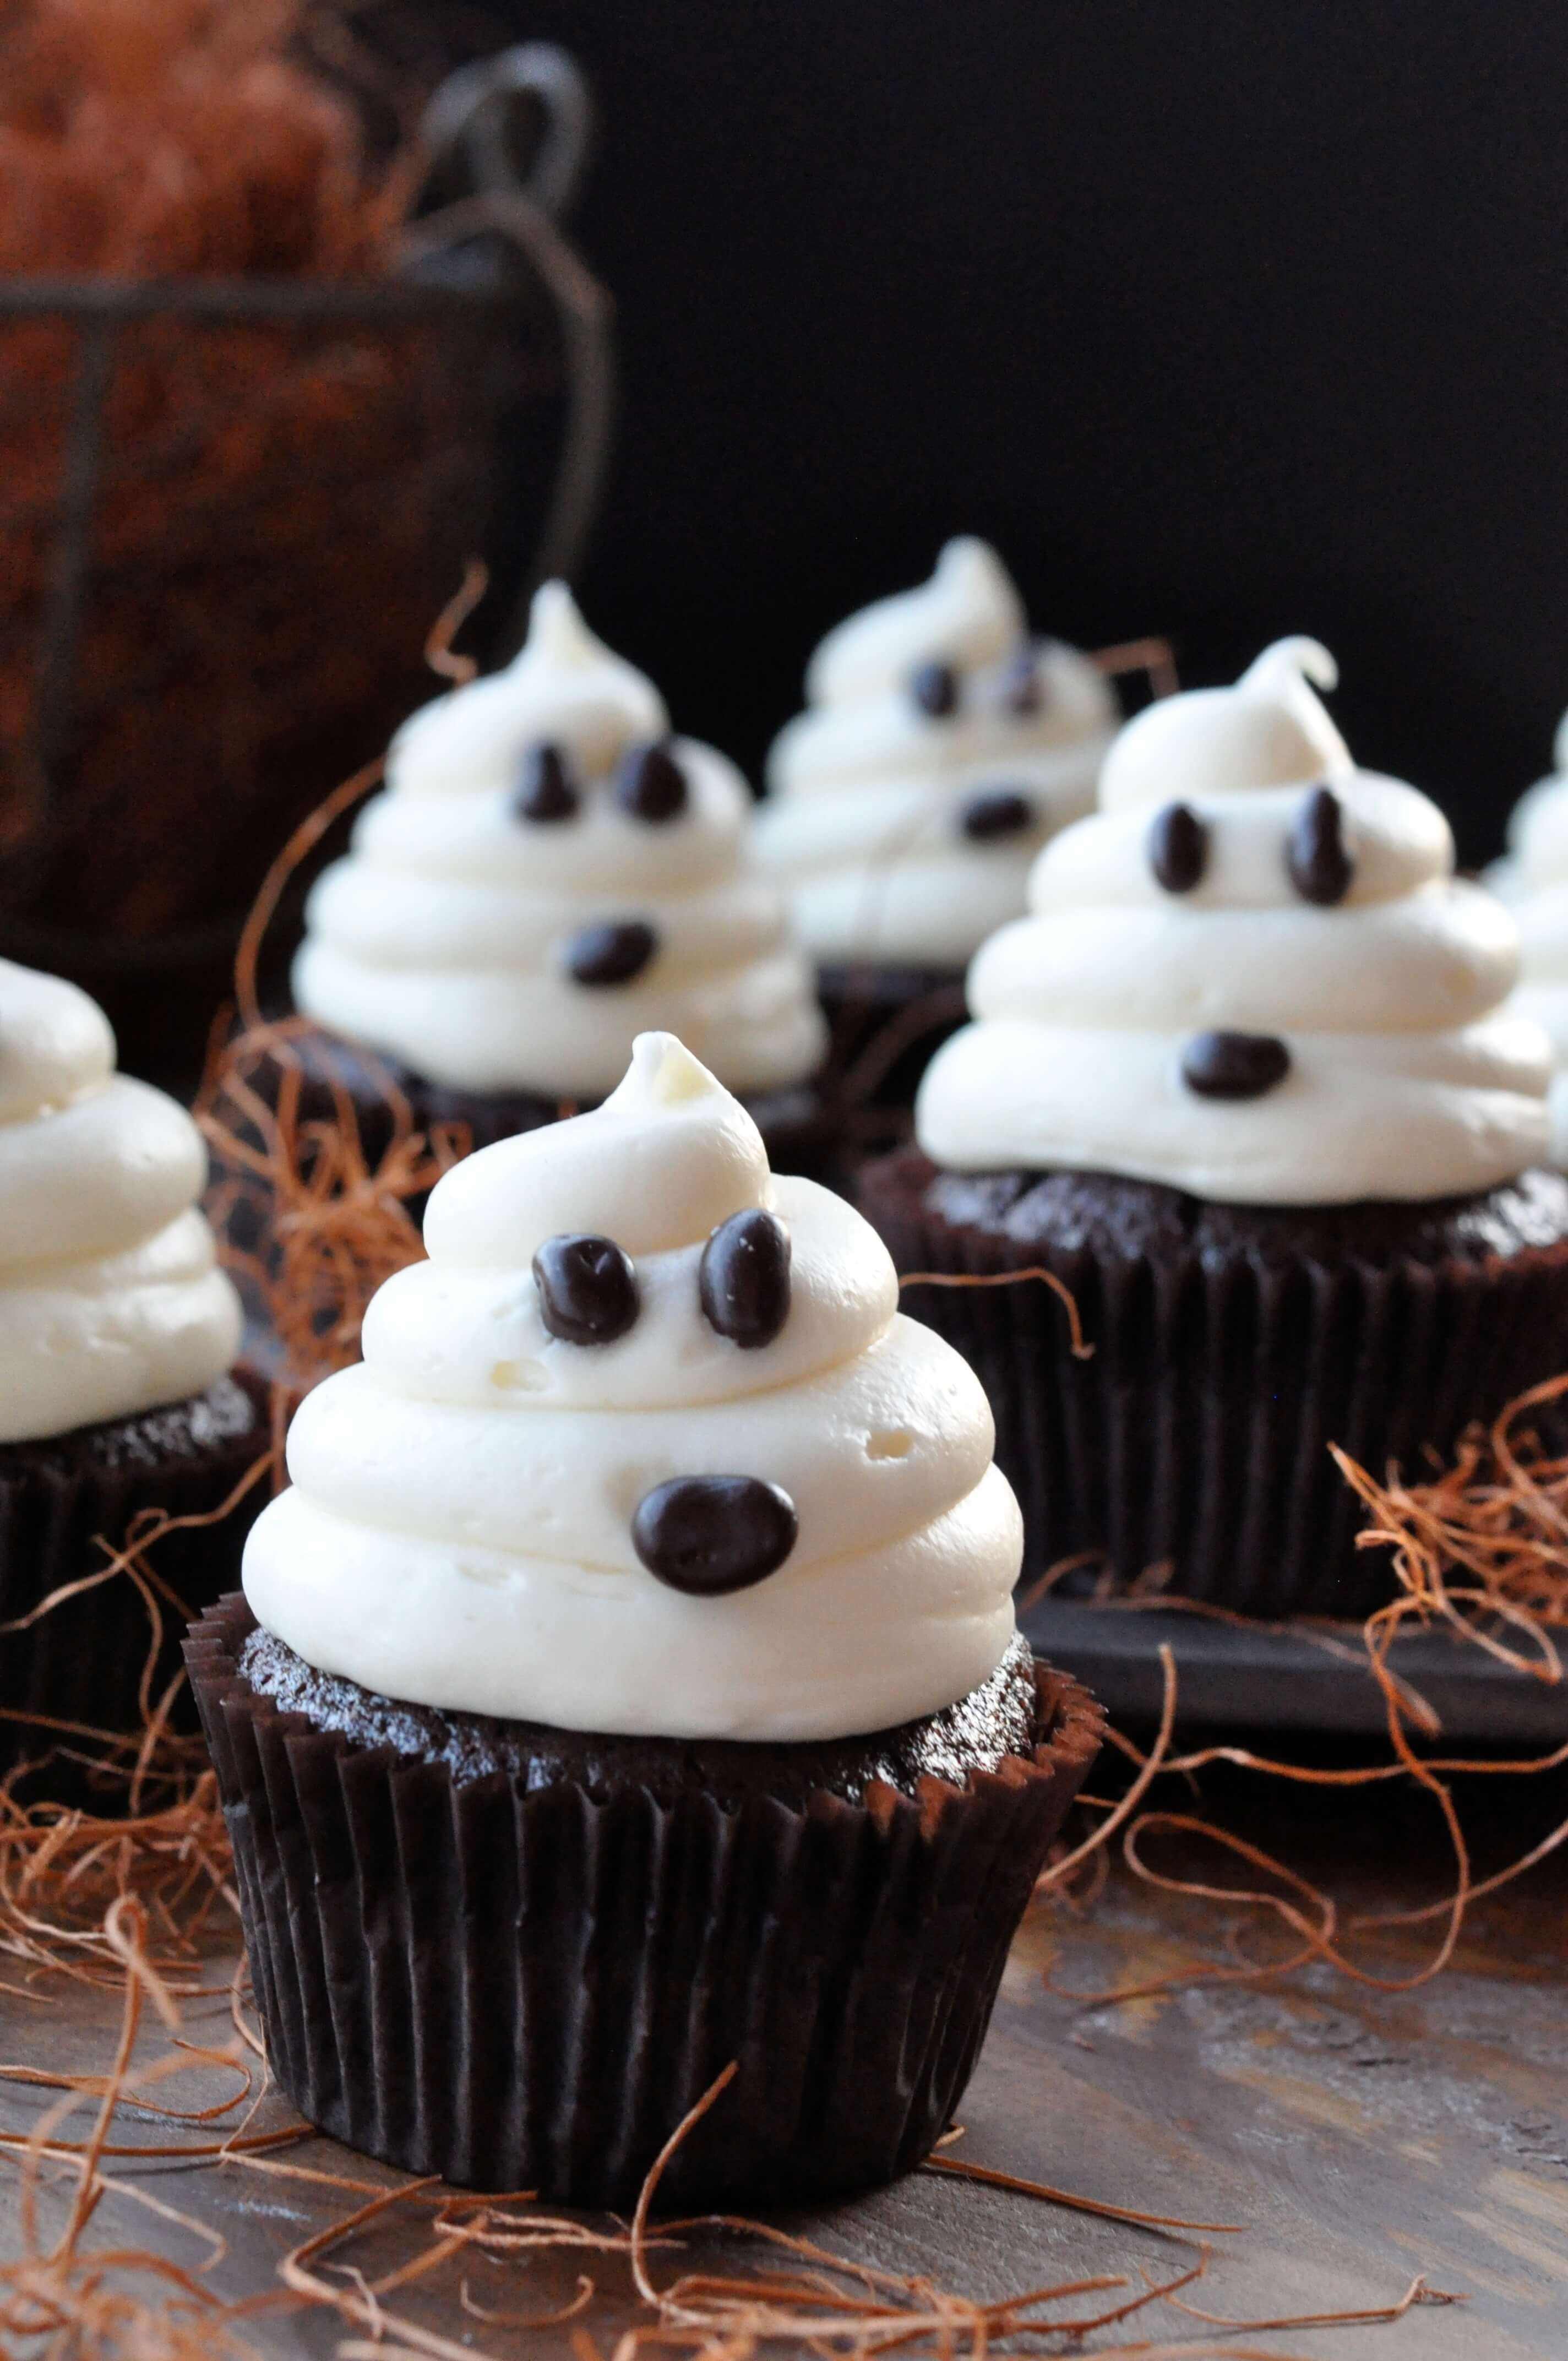 10 Best Halloween Cupcake Ideas For Kids halloween ghosts on carrot cake recipe fast and easy cupcakes 2020